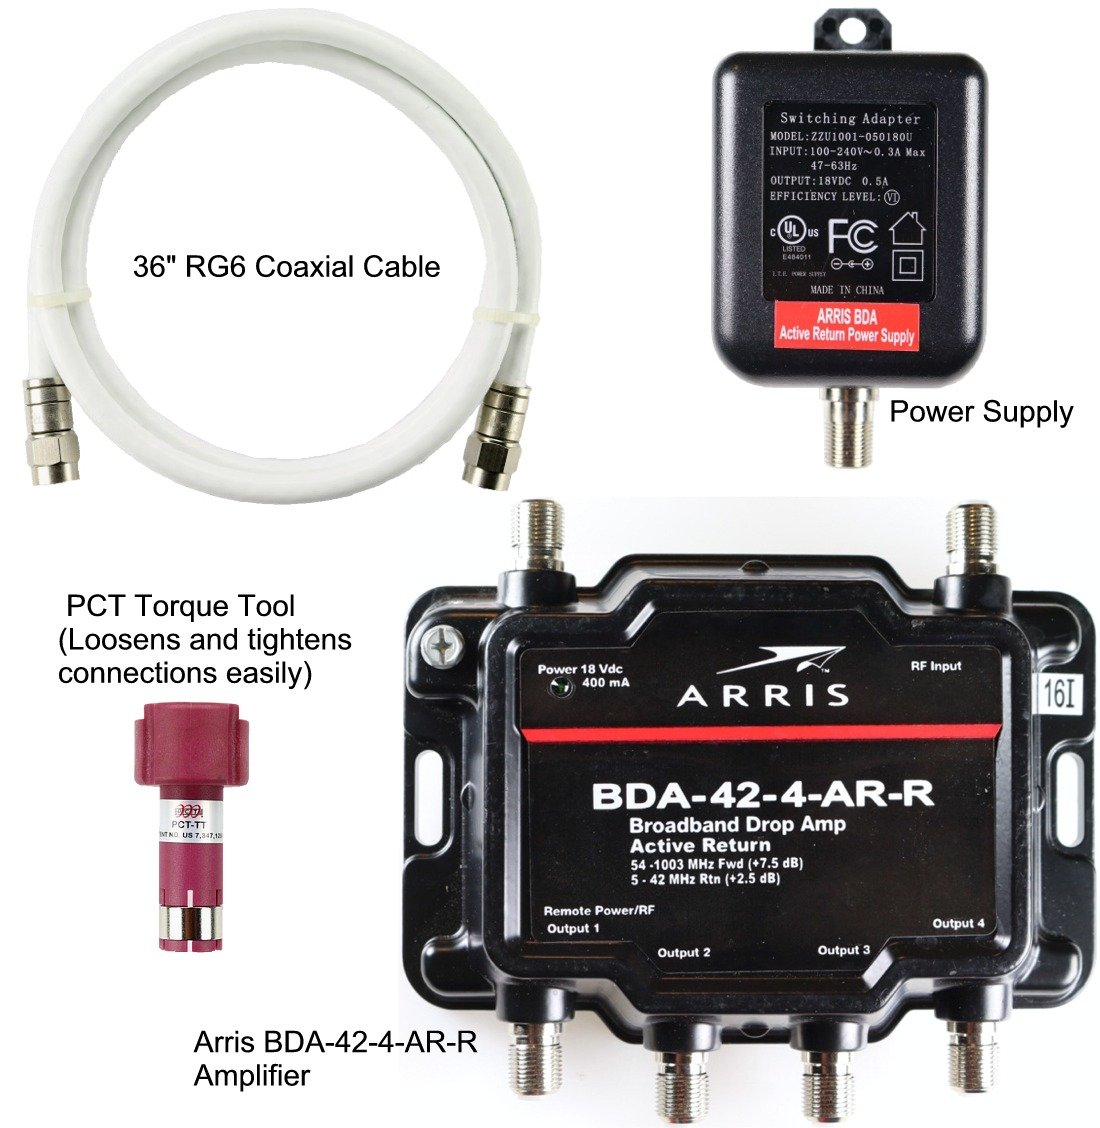 Amazon.com: Arris 4-Port Cable, Modem, TV, OTA, Satellite HDTV Amplifier Splitter Signal Booster with Active Return And Coax Cable Package - cableTVamps: ...